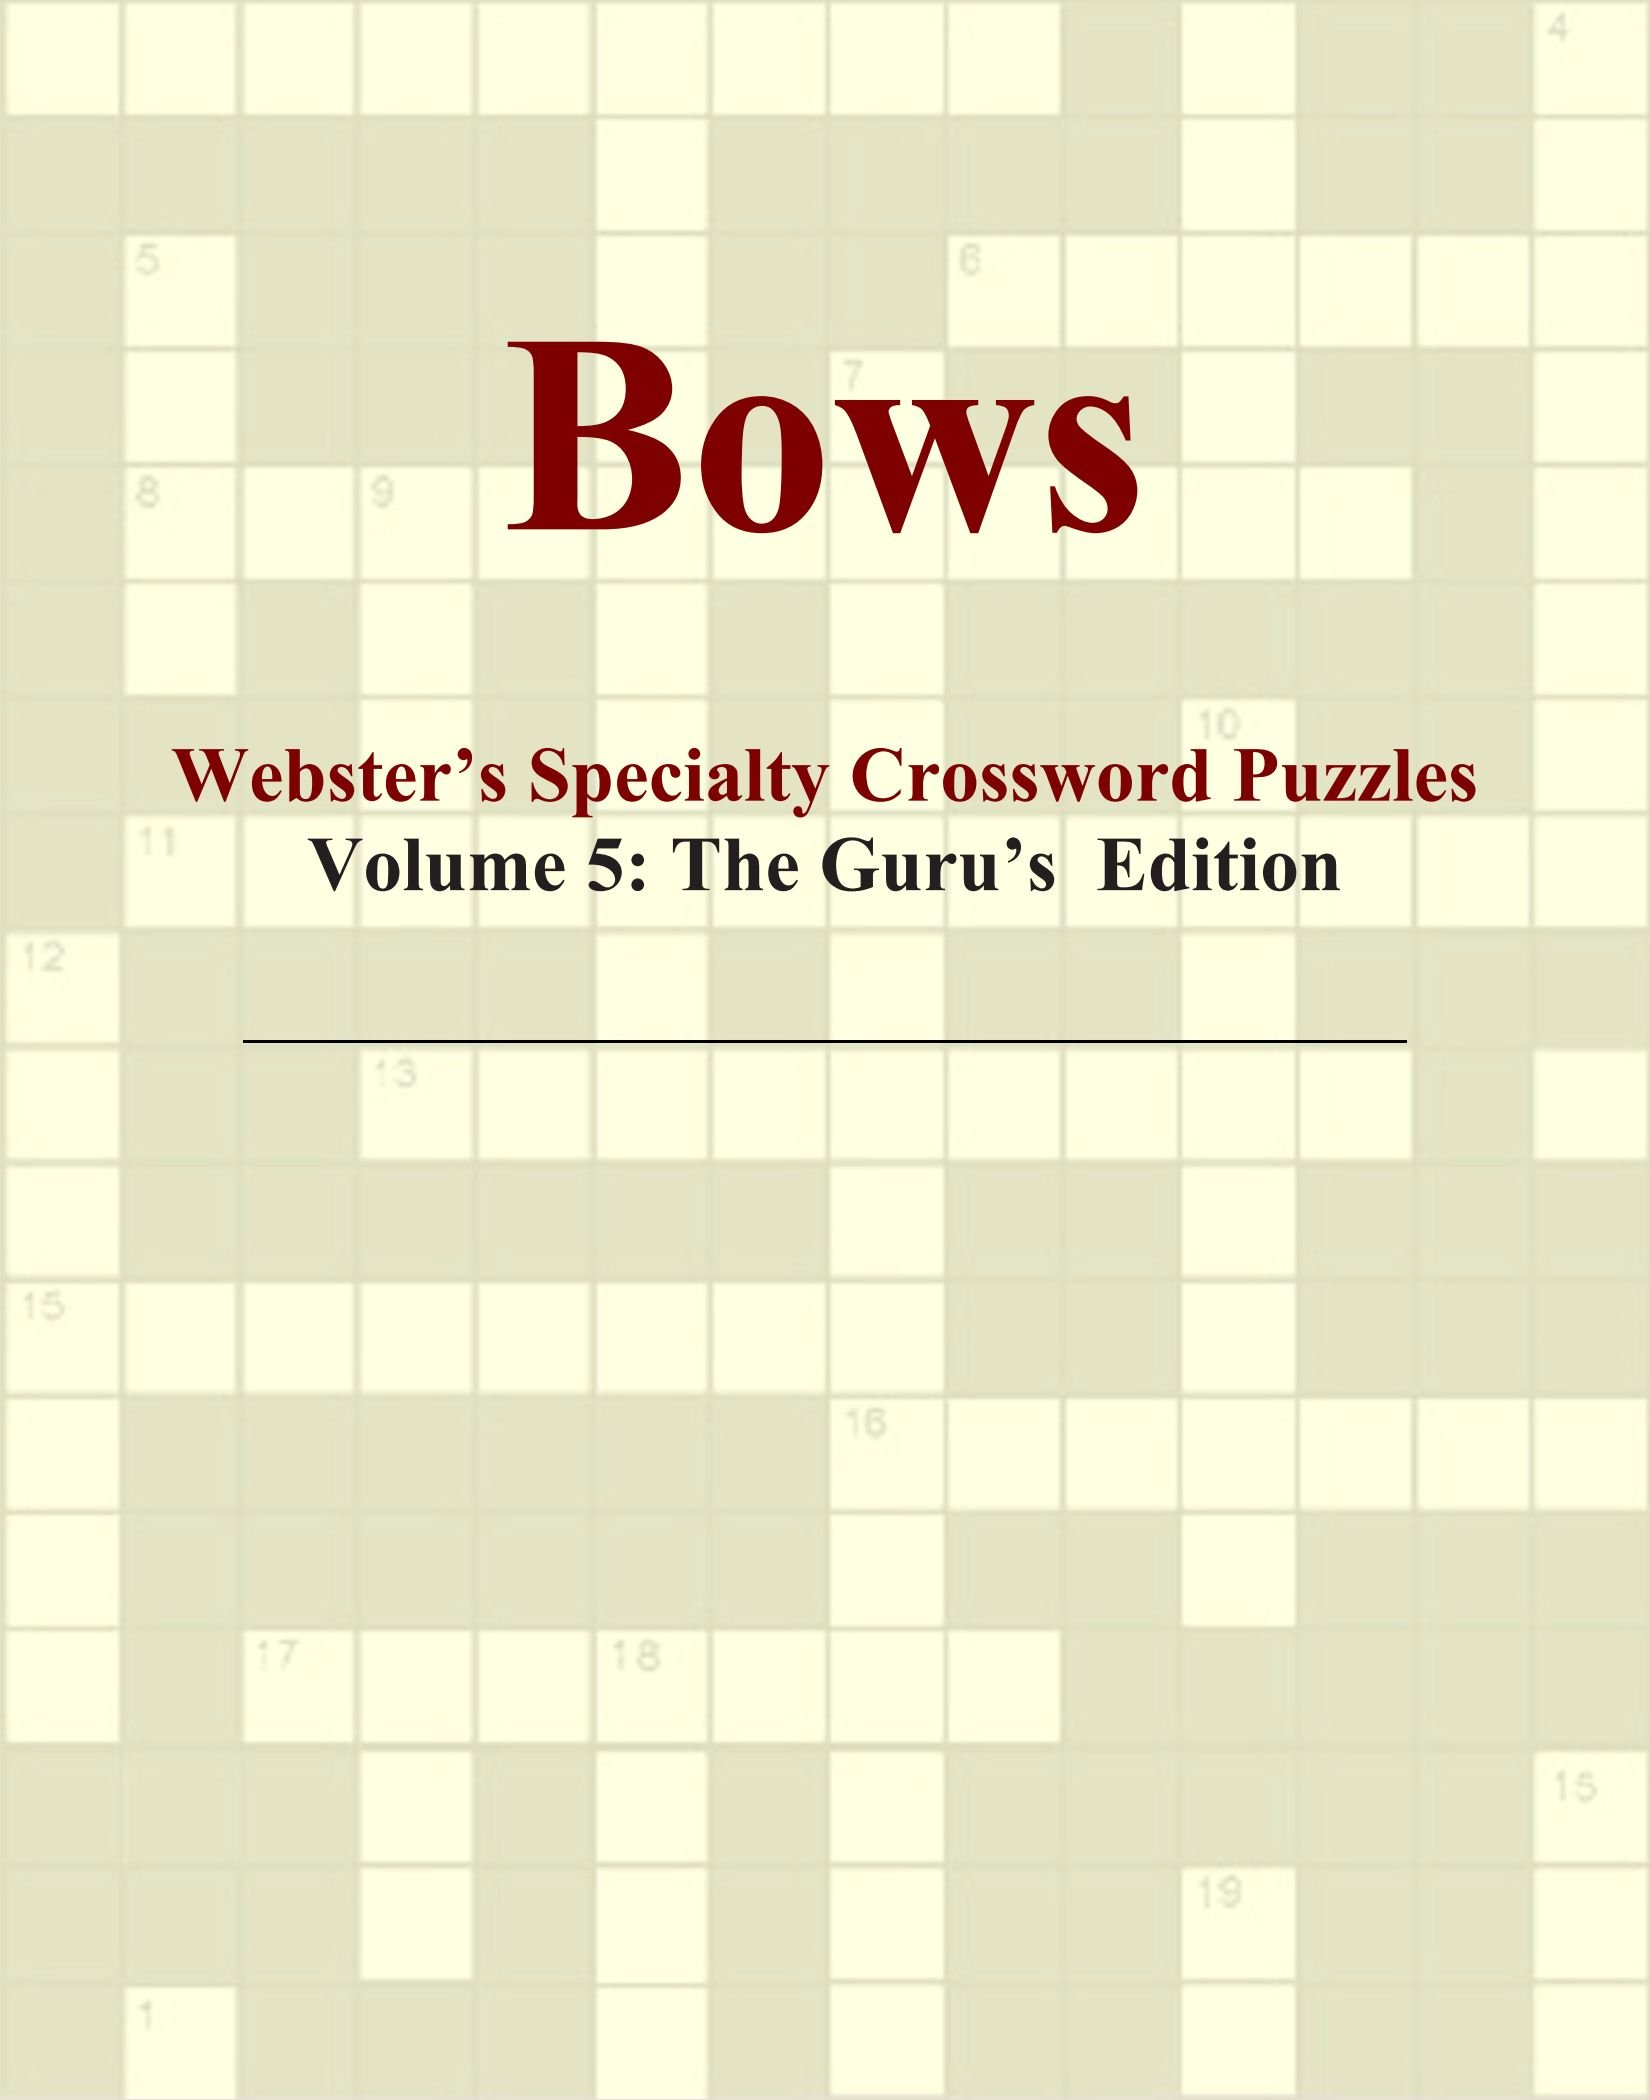 Download Bows - Webster's Specialty Crossword Puzzles, Volume 5: The Guru's Edition ebook